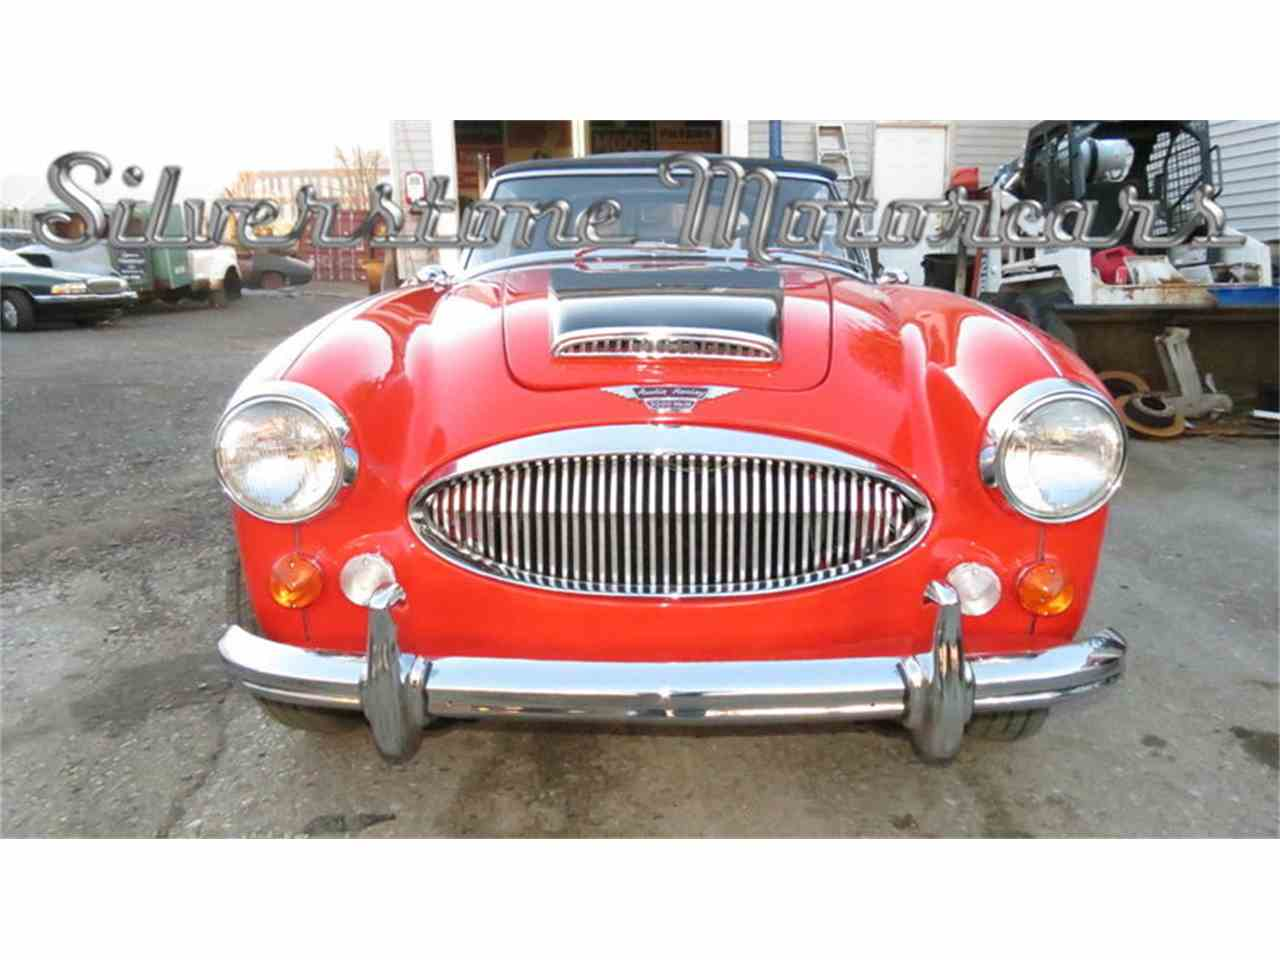 Large Picture of '66 Austin-Healey 3000 Mark III located in Massachusetts - $75,000.00 Offered by Silverstone Motorcars - G3XL